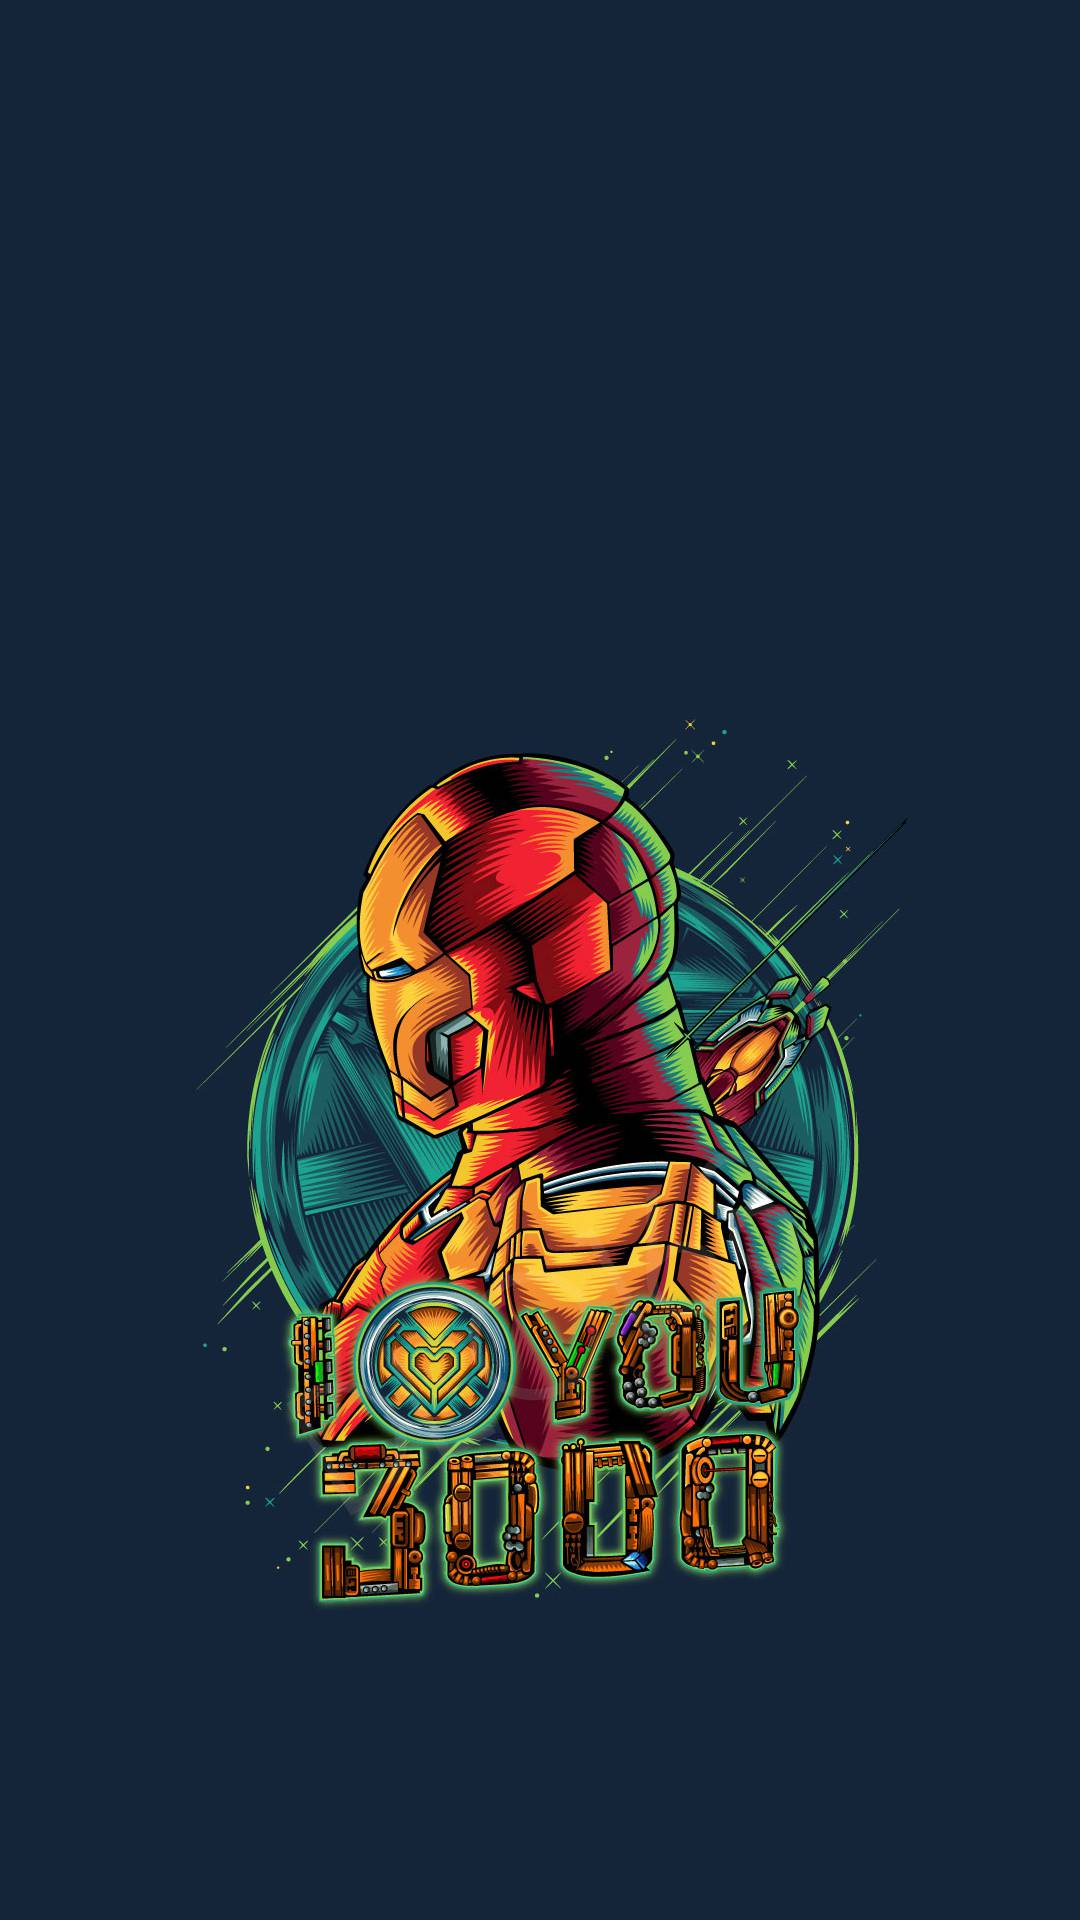 Iron Man Art I Love You 3000 iPhone Wallpaper